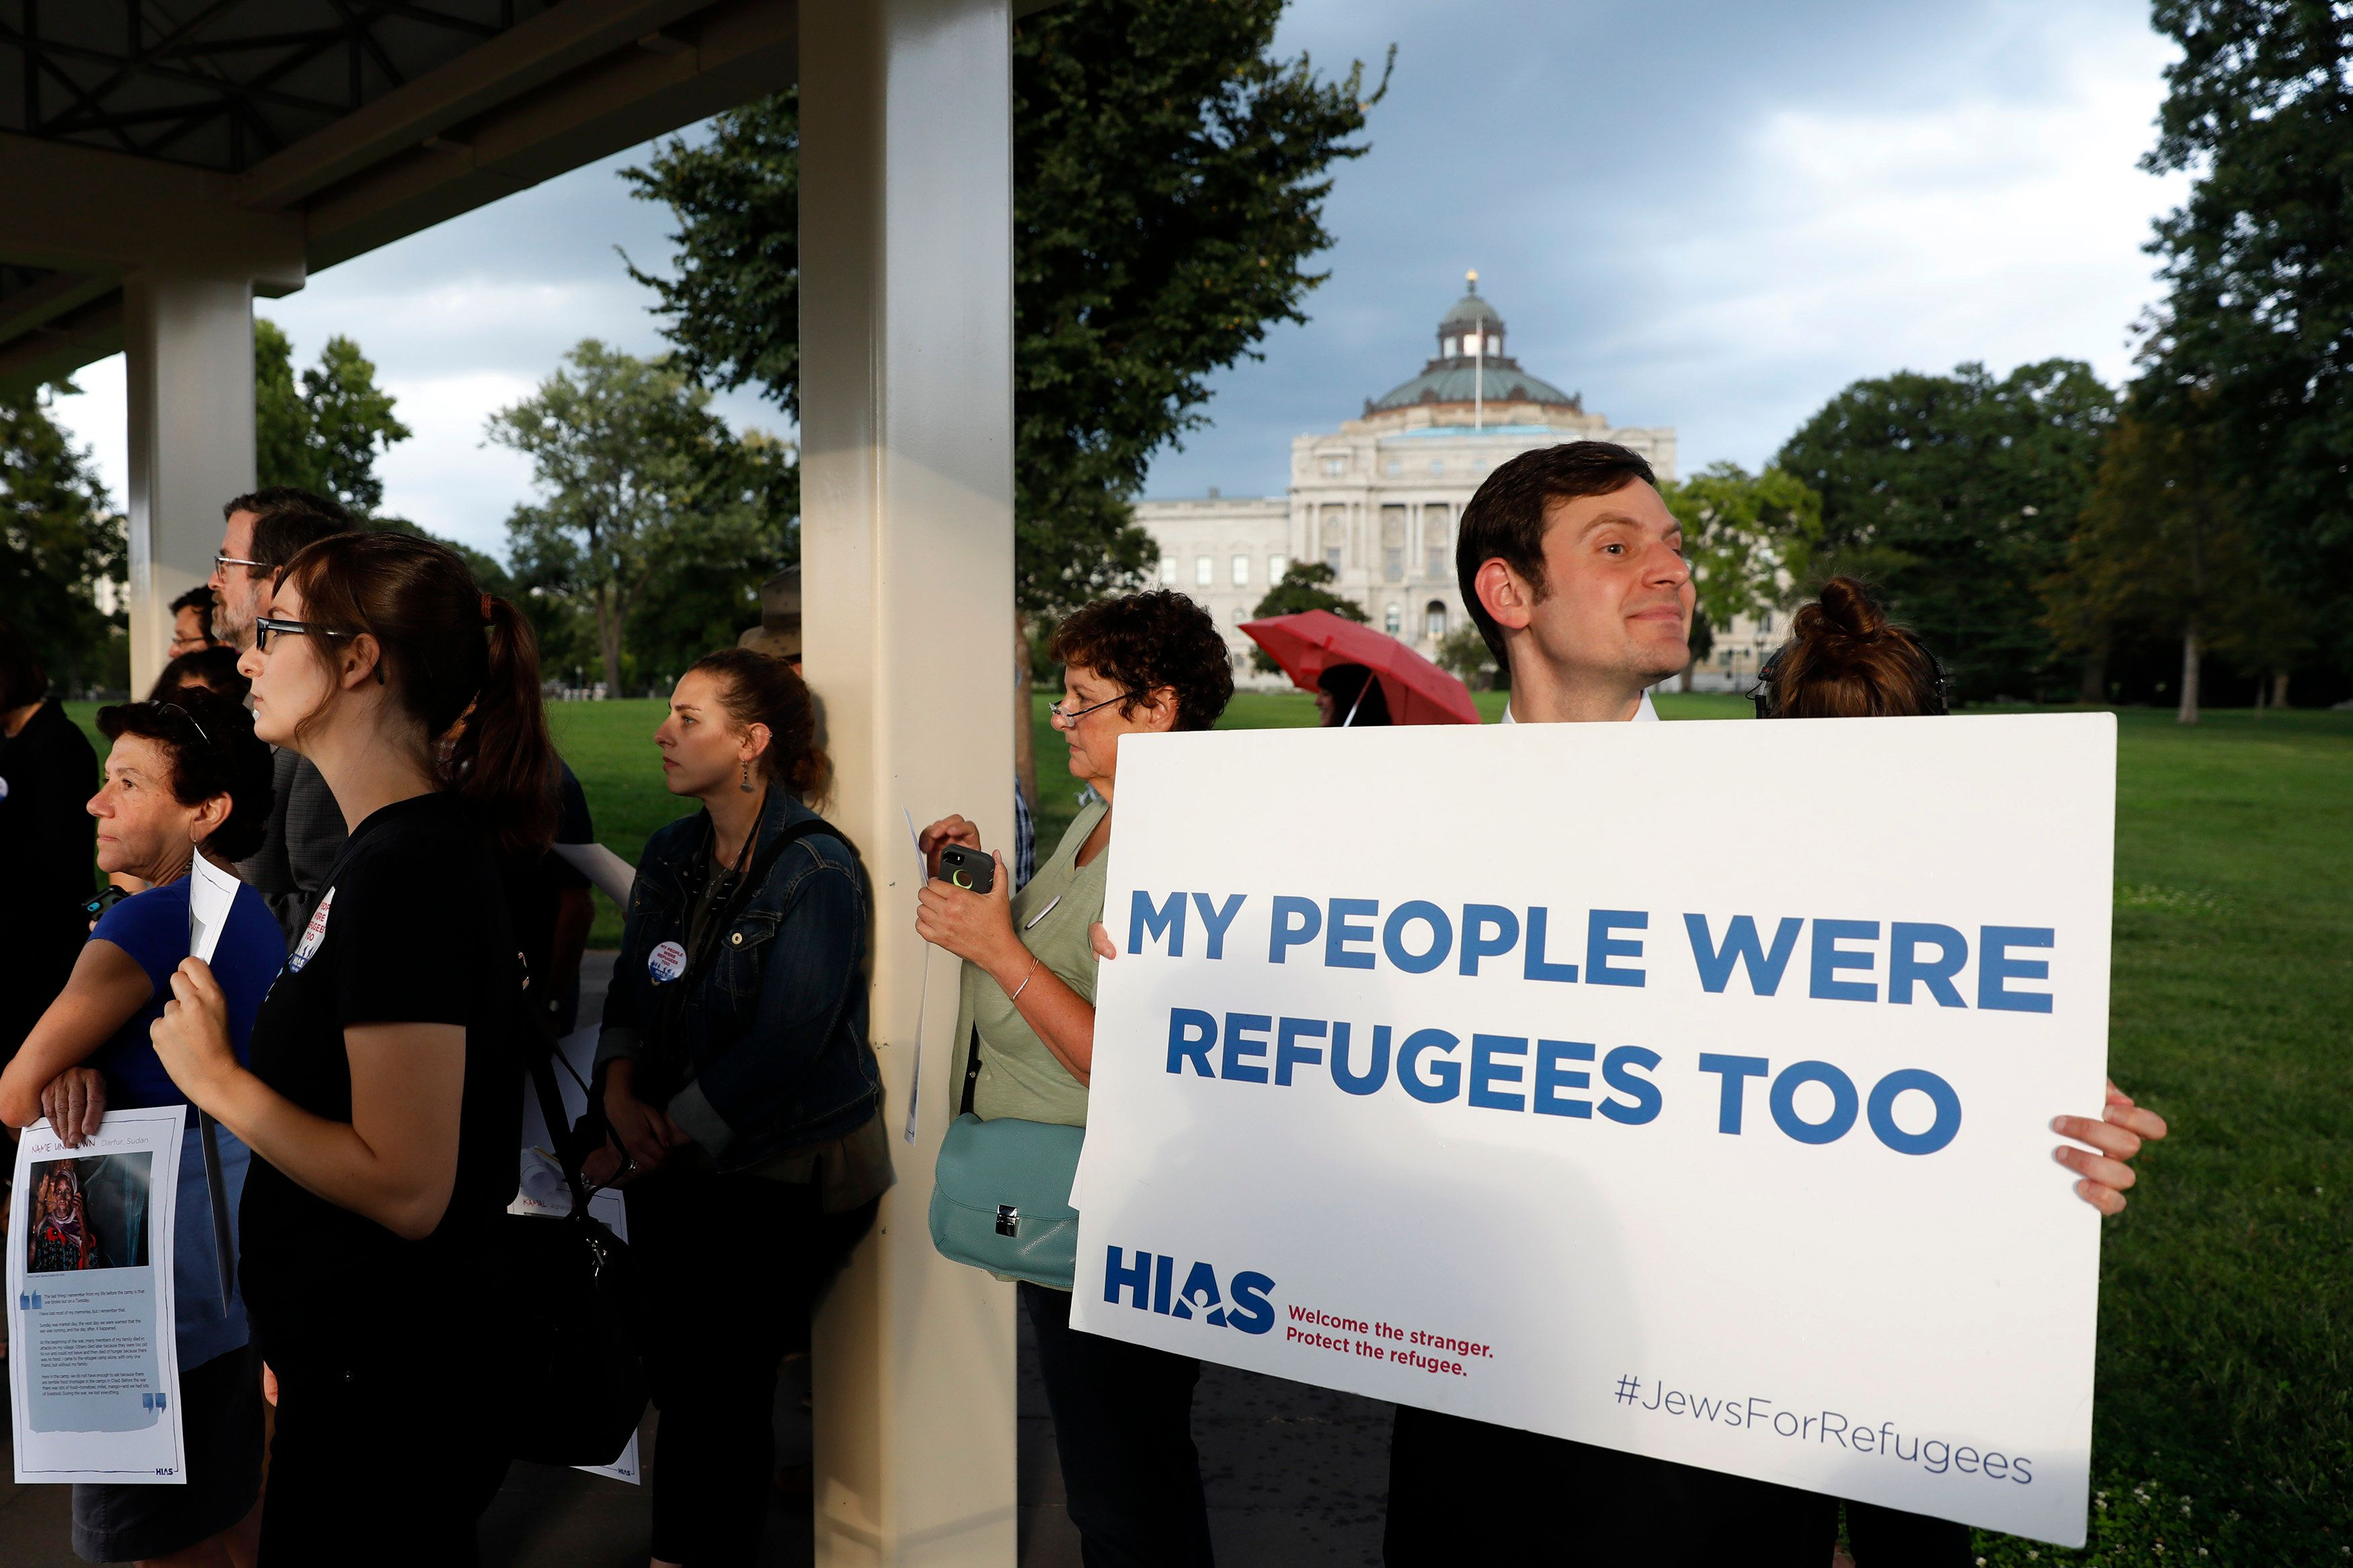 WASHINGTON, DC - SEPTEMBER 14: People holds signs during a demonstration organized by HIAS, founded as the Hebrew Immigrant Aid Society, outside the U.S. Capitol September 14, 2017 in Washington, DC. Protestors are calling on President Trump to increase the number of refugees resettled in the United States. (Photo by Aaron P. Bernstein/Getty Images)